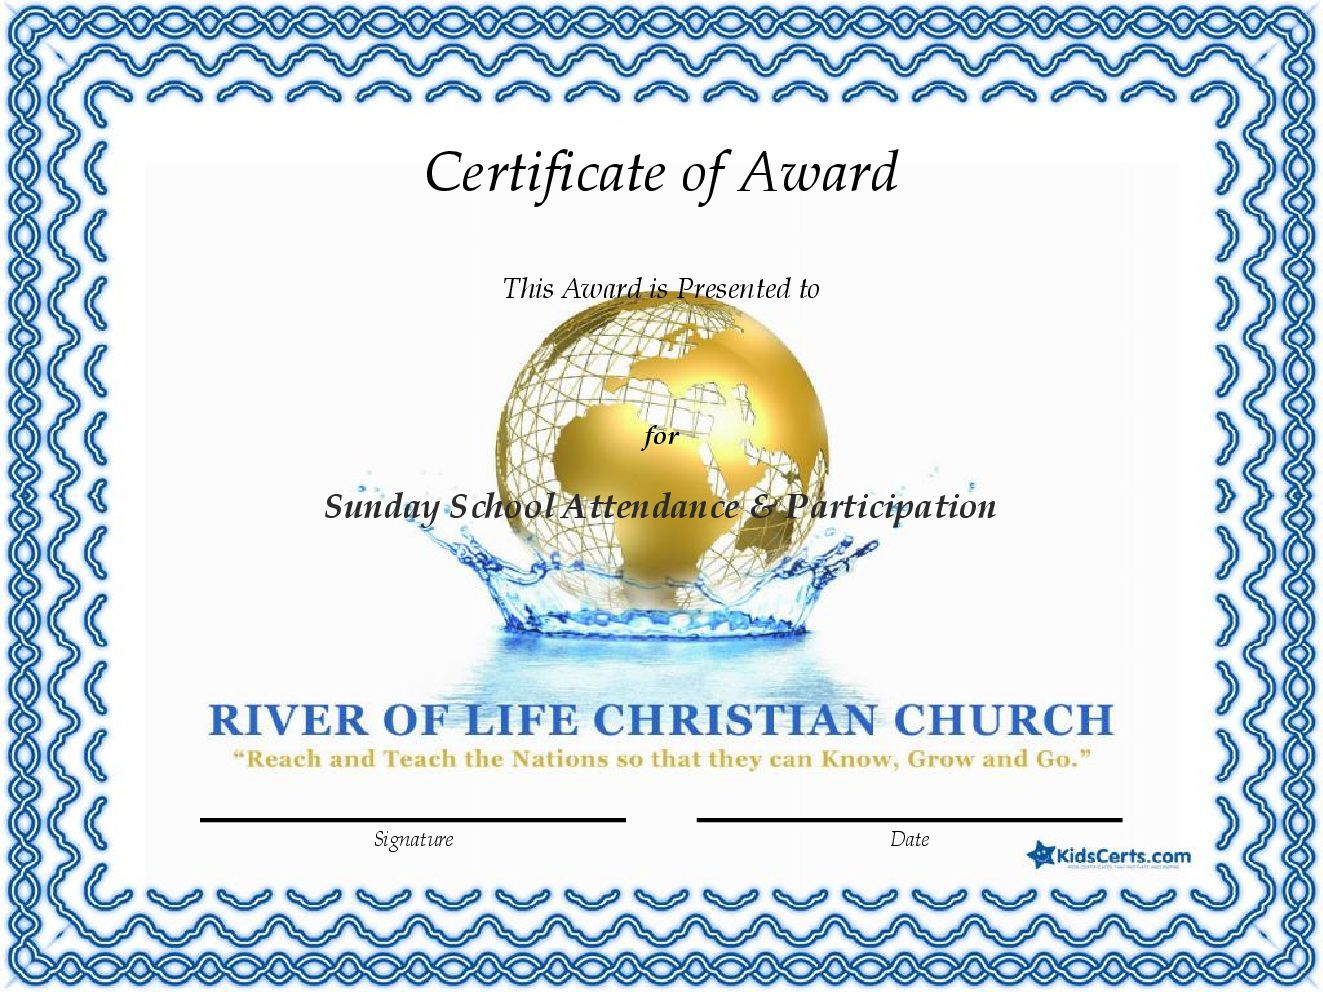 Certificate of award sunday school attendance